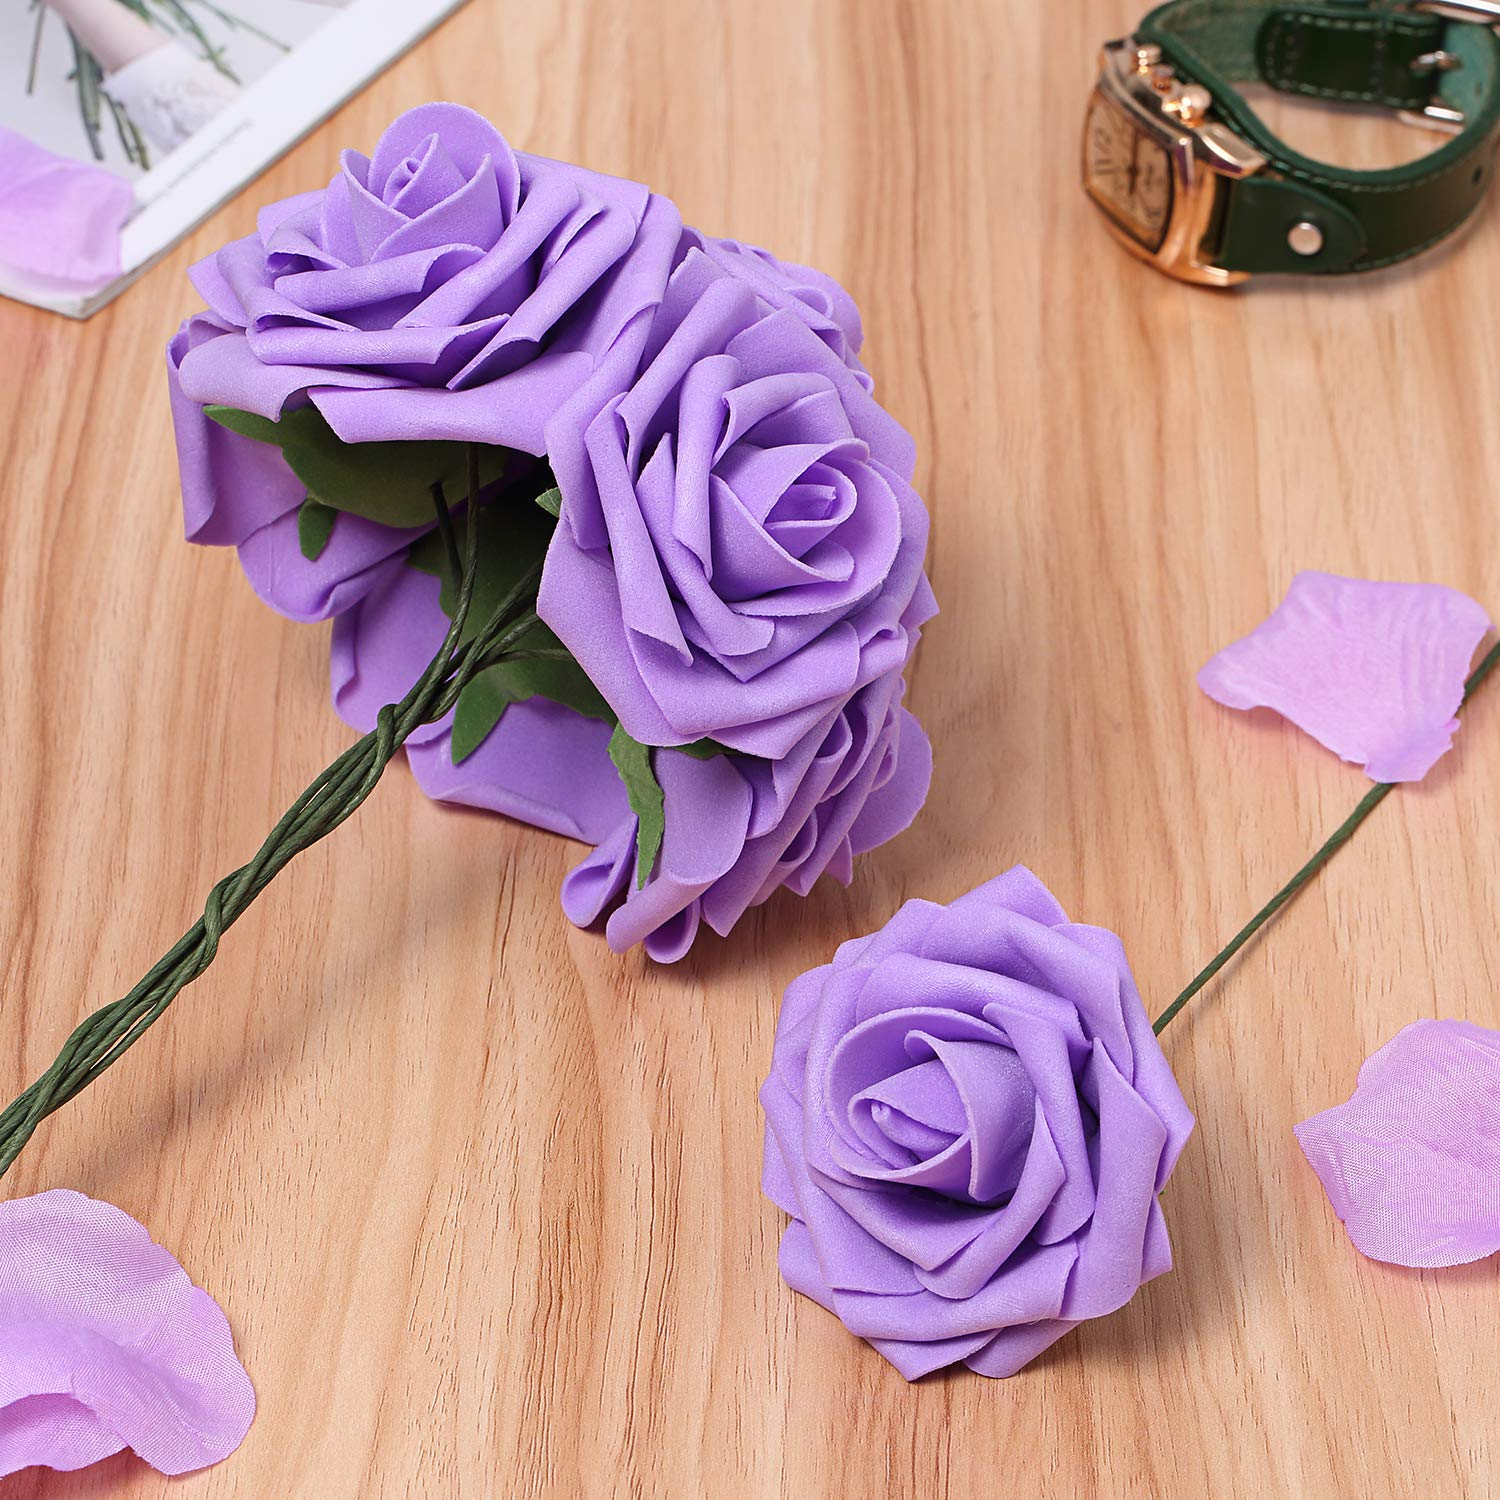 Bunny Lamb Artificial Roses Handcrafted Wedding Flowers for DIY Wedding Centerpieces Bridal Bouquet Flower Arrangement and Church Hotel Restaurant Home Decorations - 50pcs (Floral Lavender)